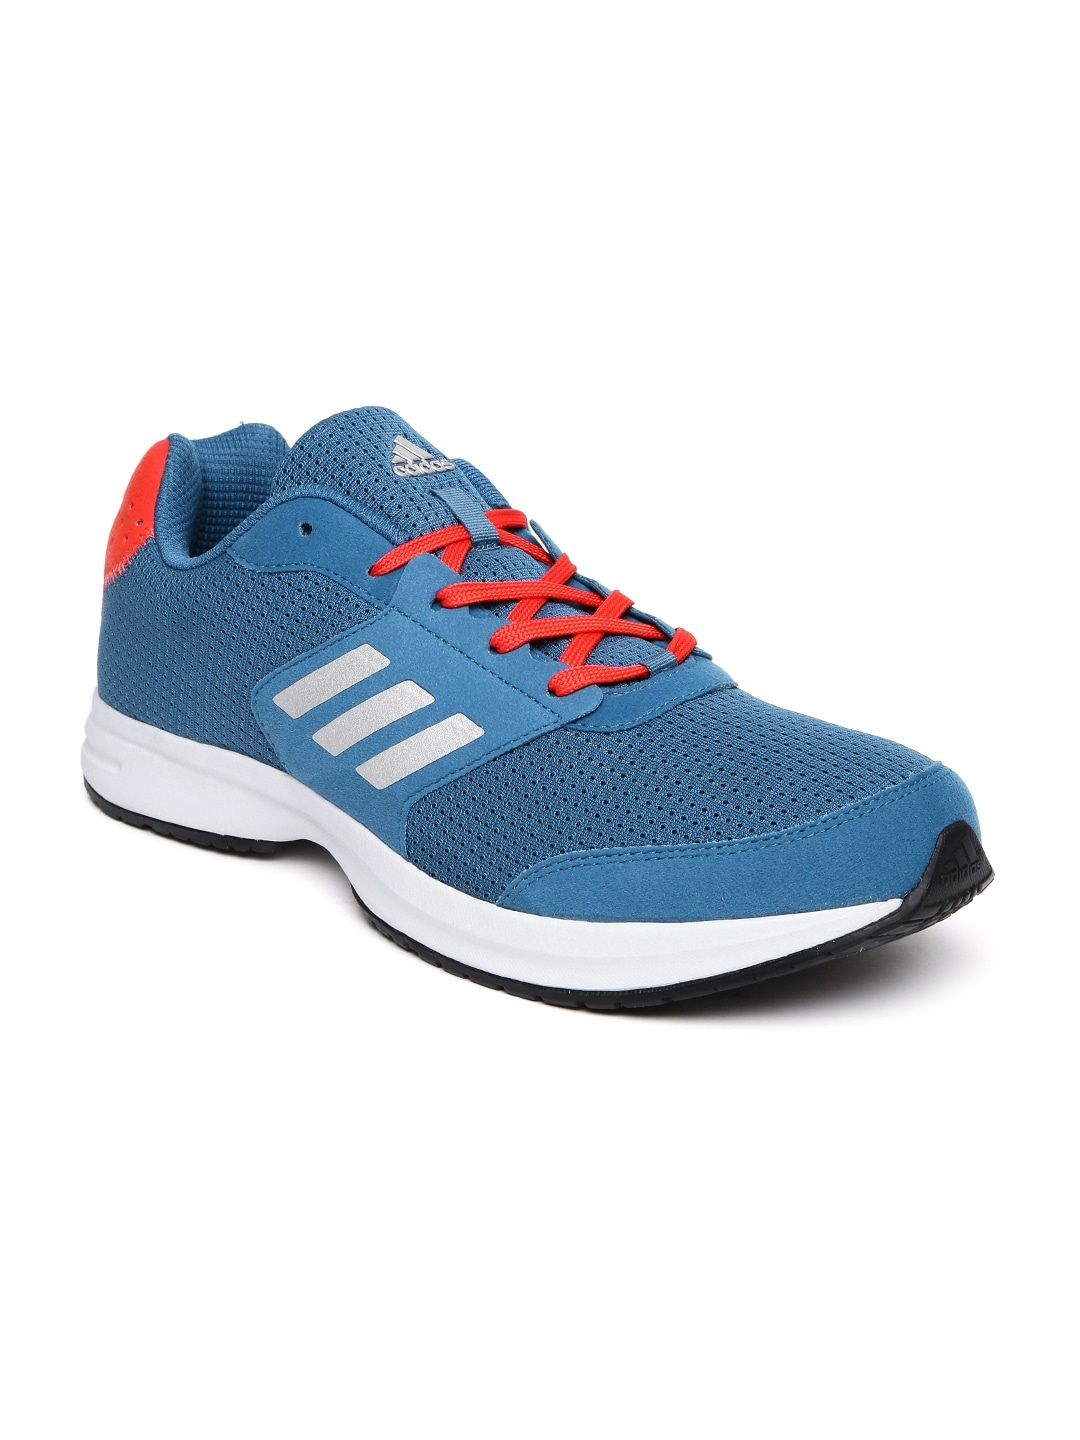 Who Makes The Best Running Shoes Adidas Or Nike